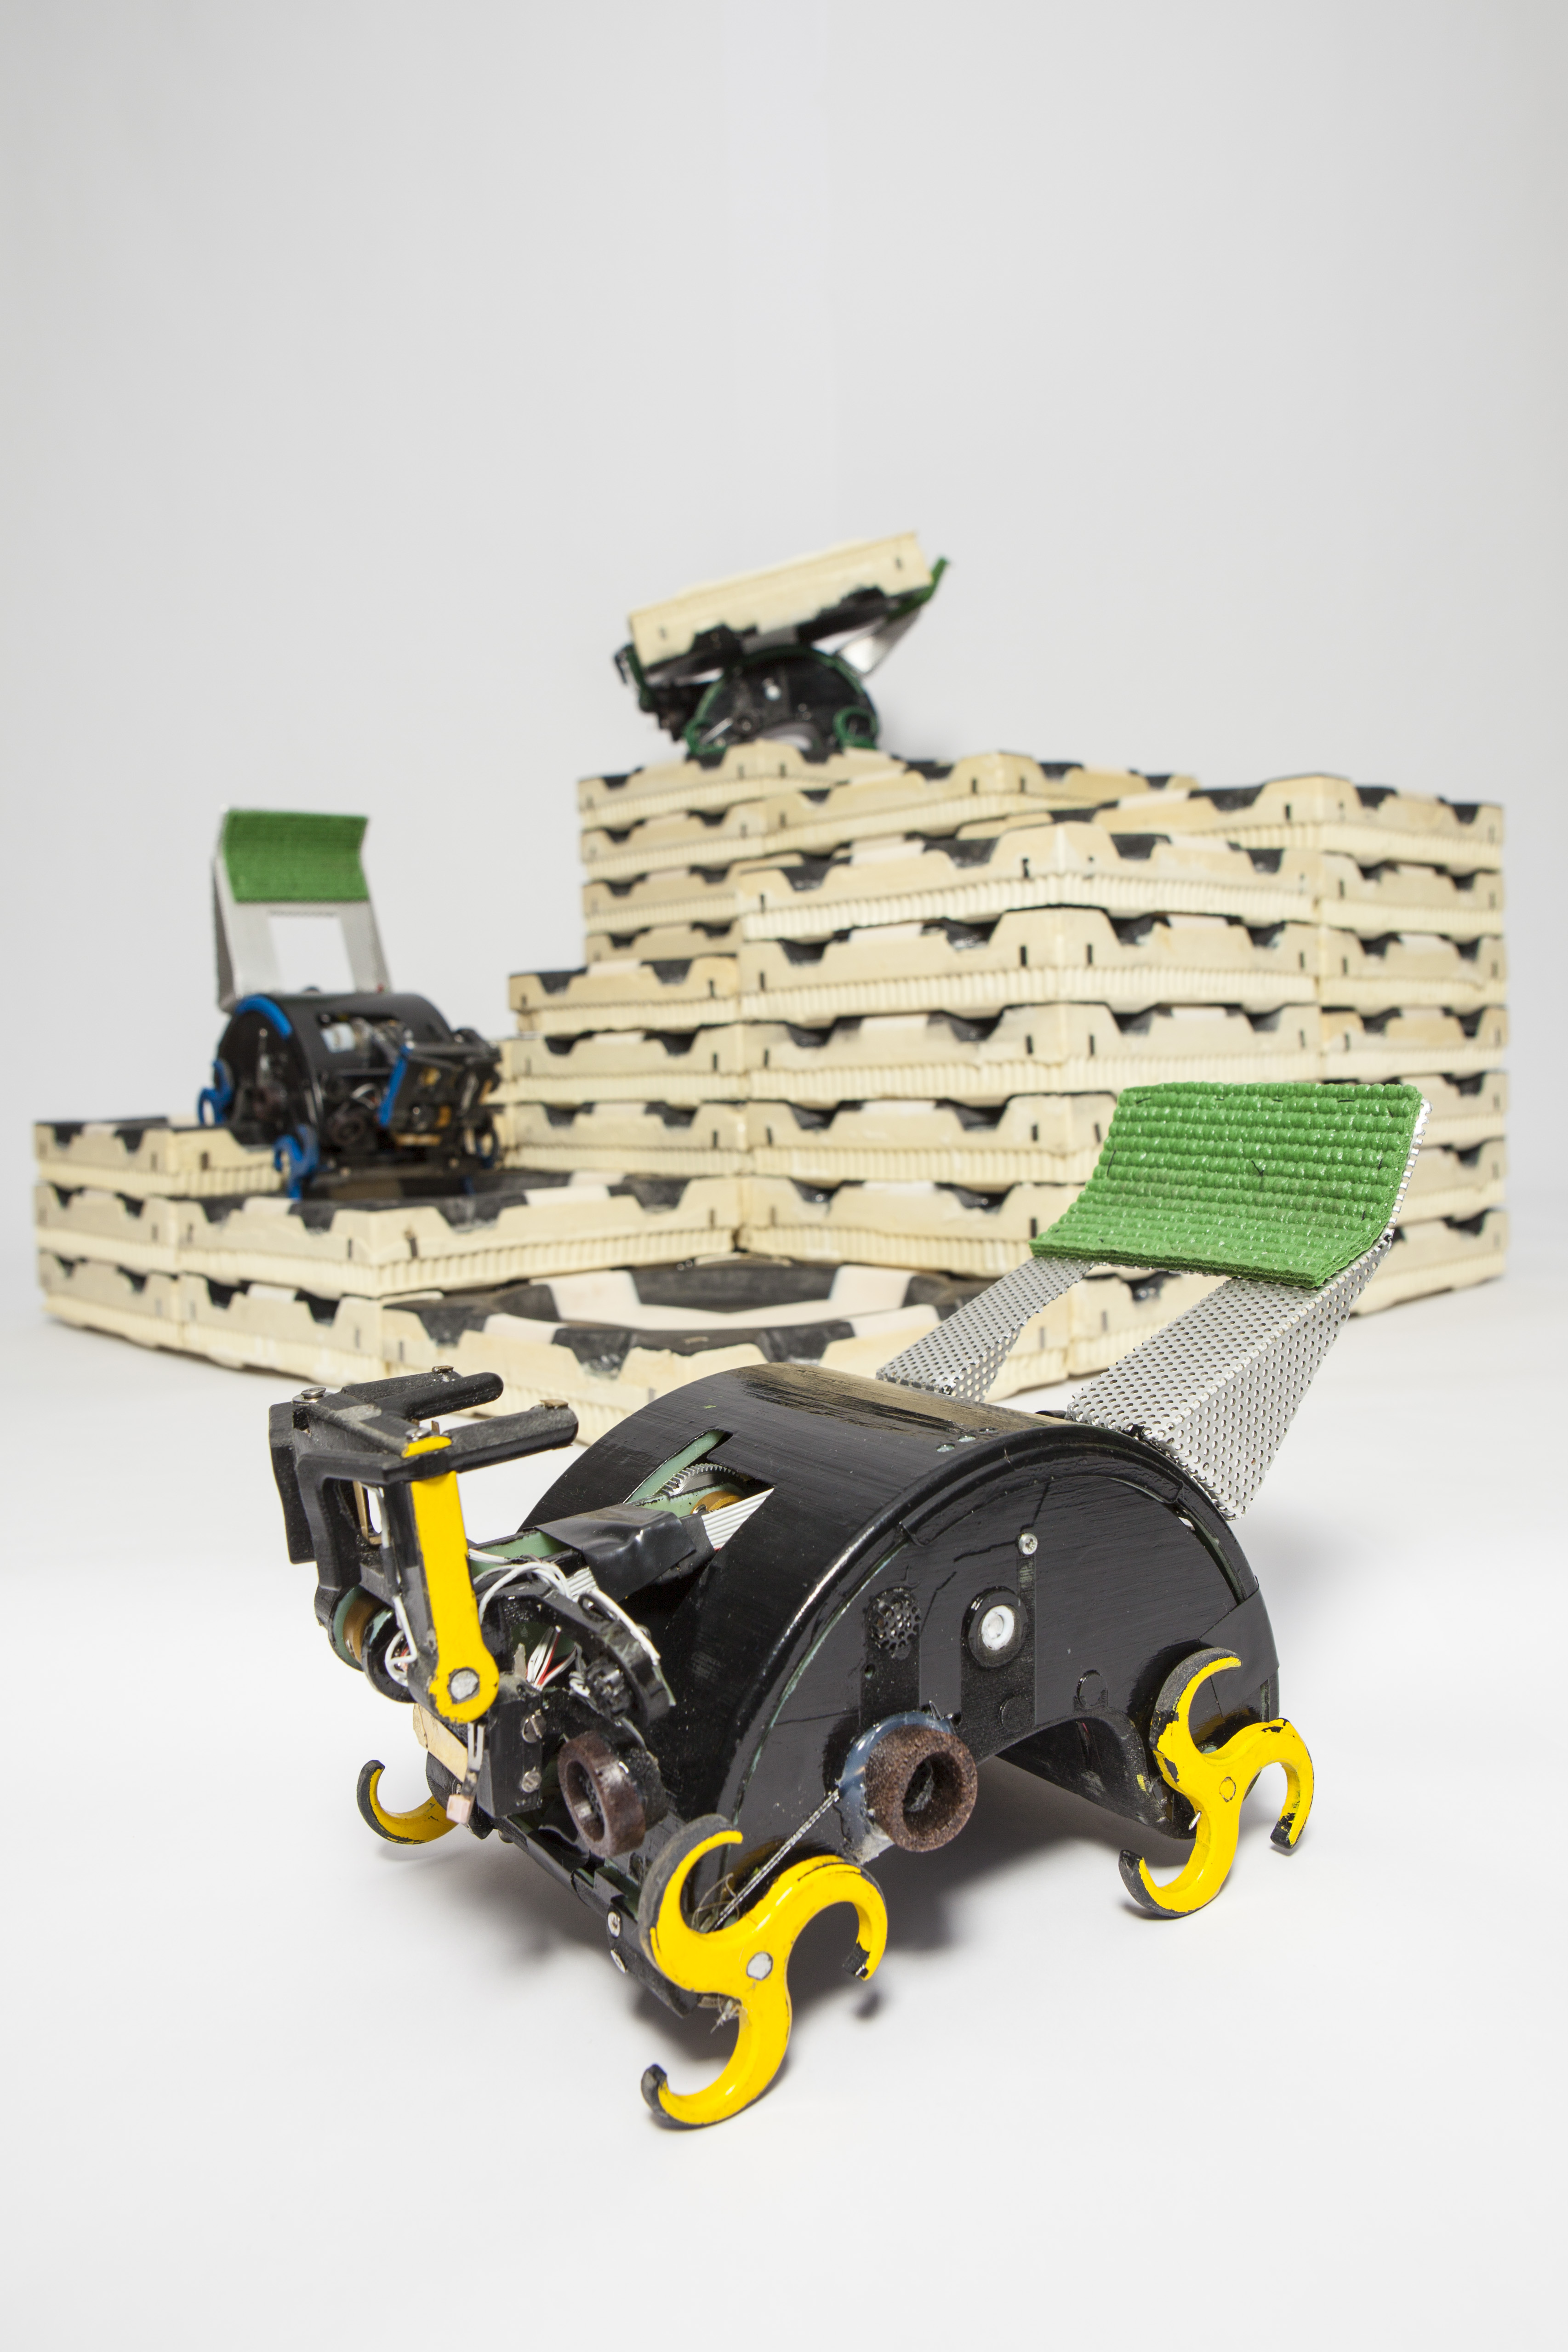 Termite-Inspired Robots for Collective Construction